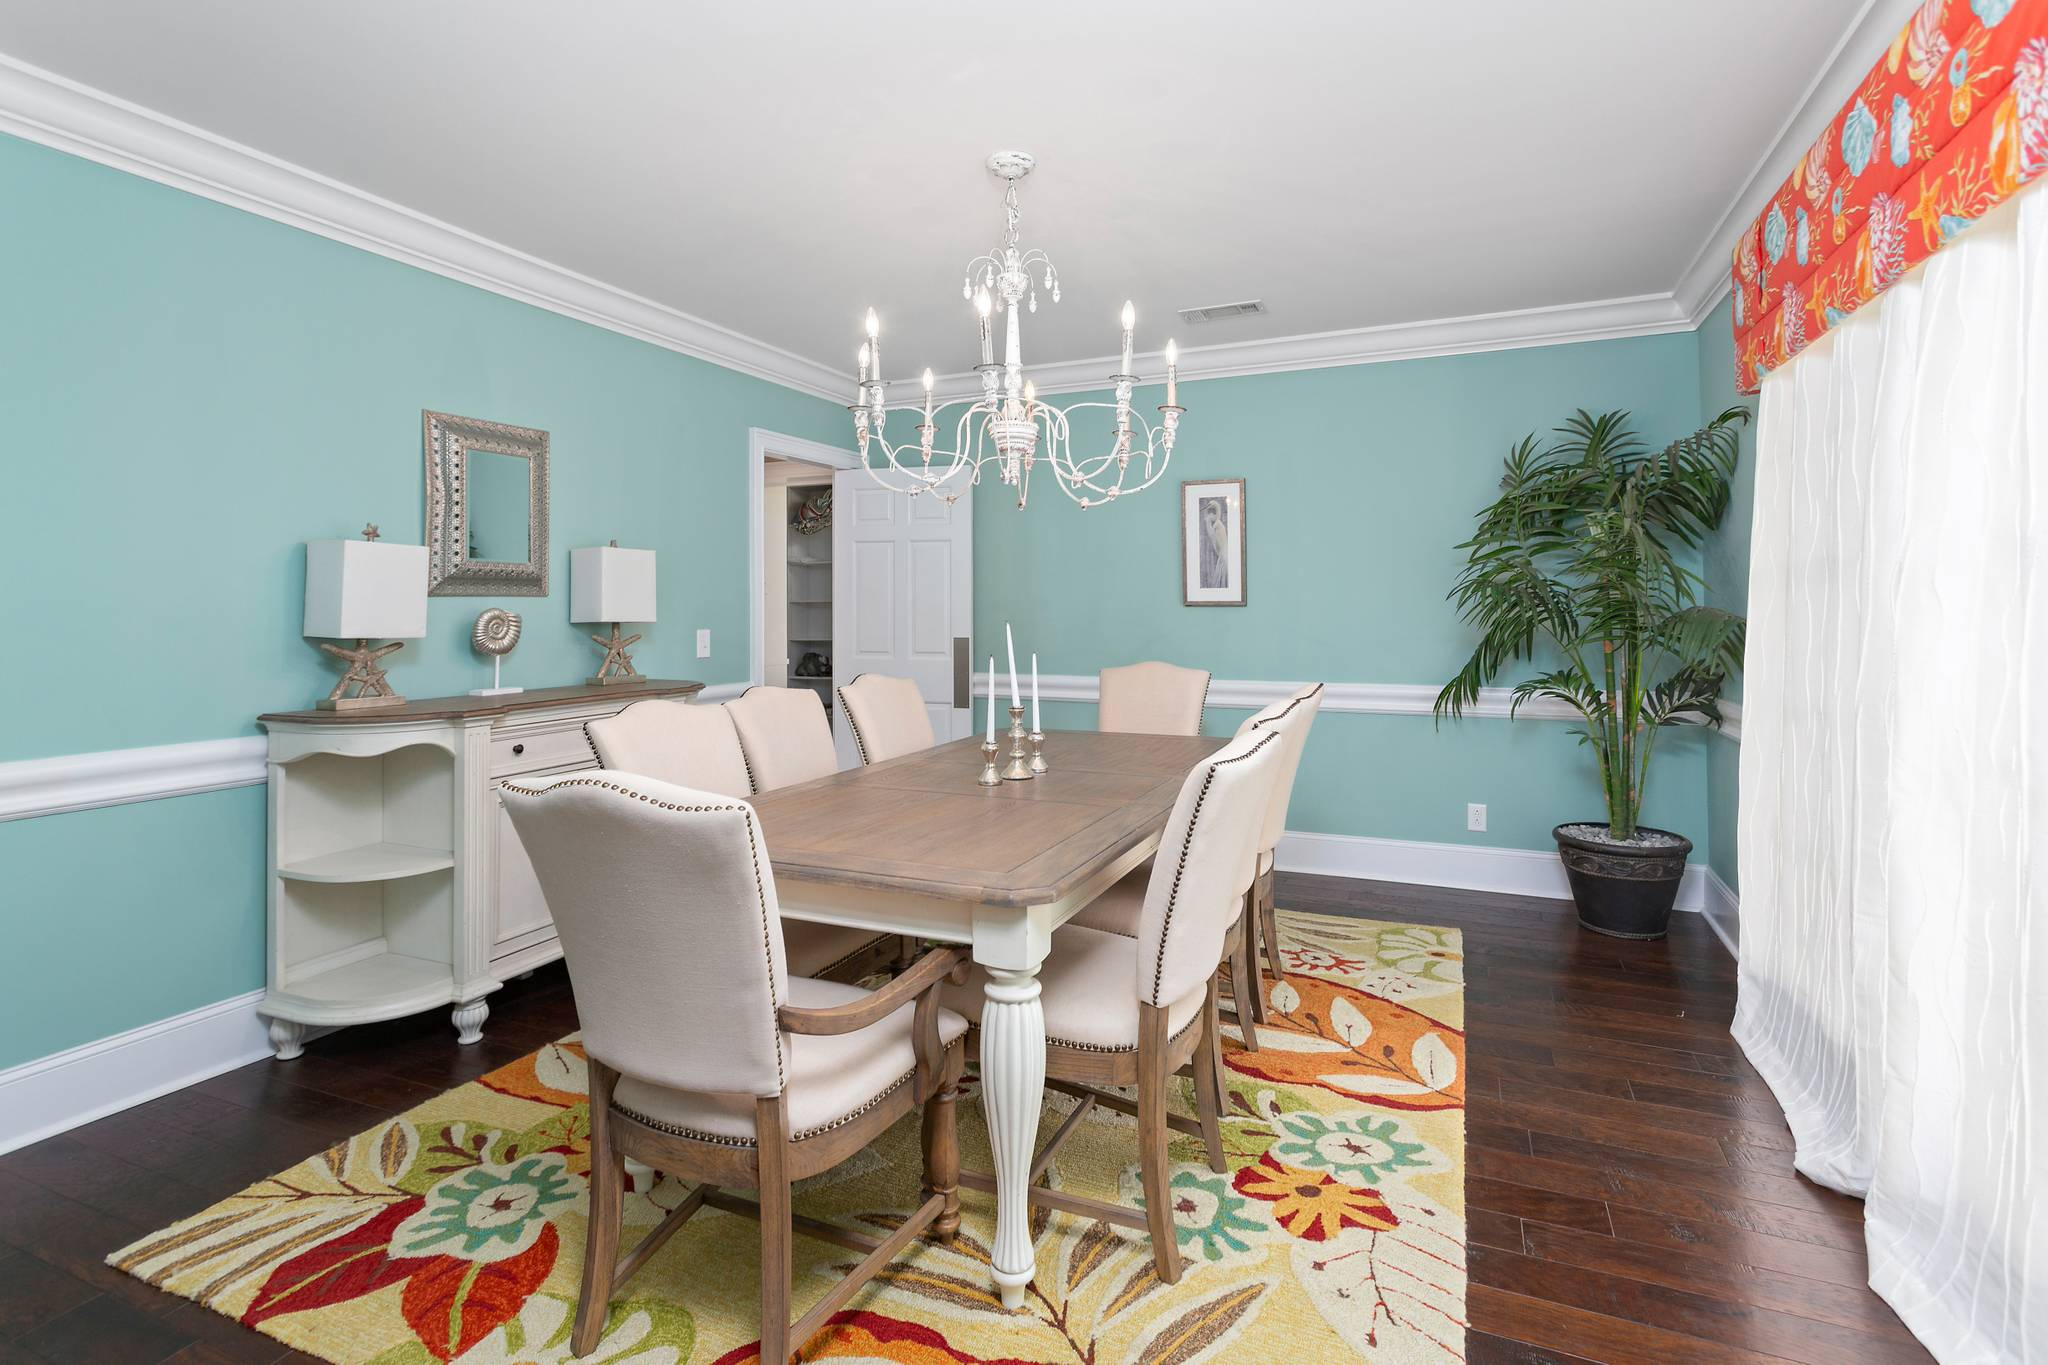 Dining Room at 154 Gould St on St Simons Island